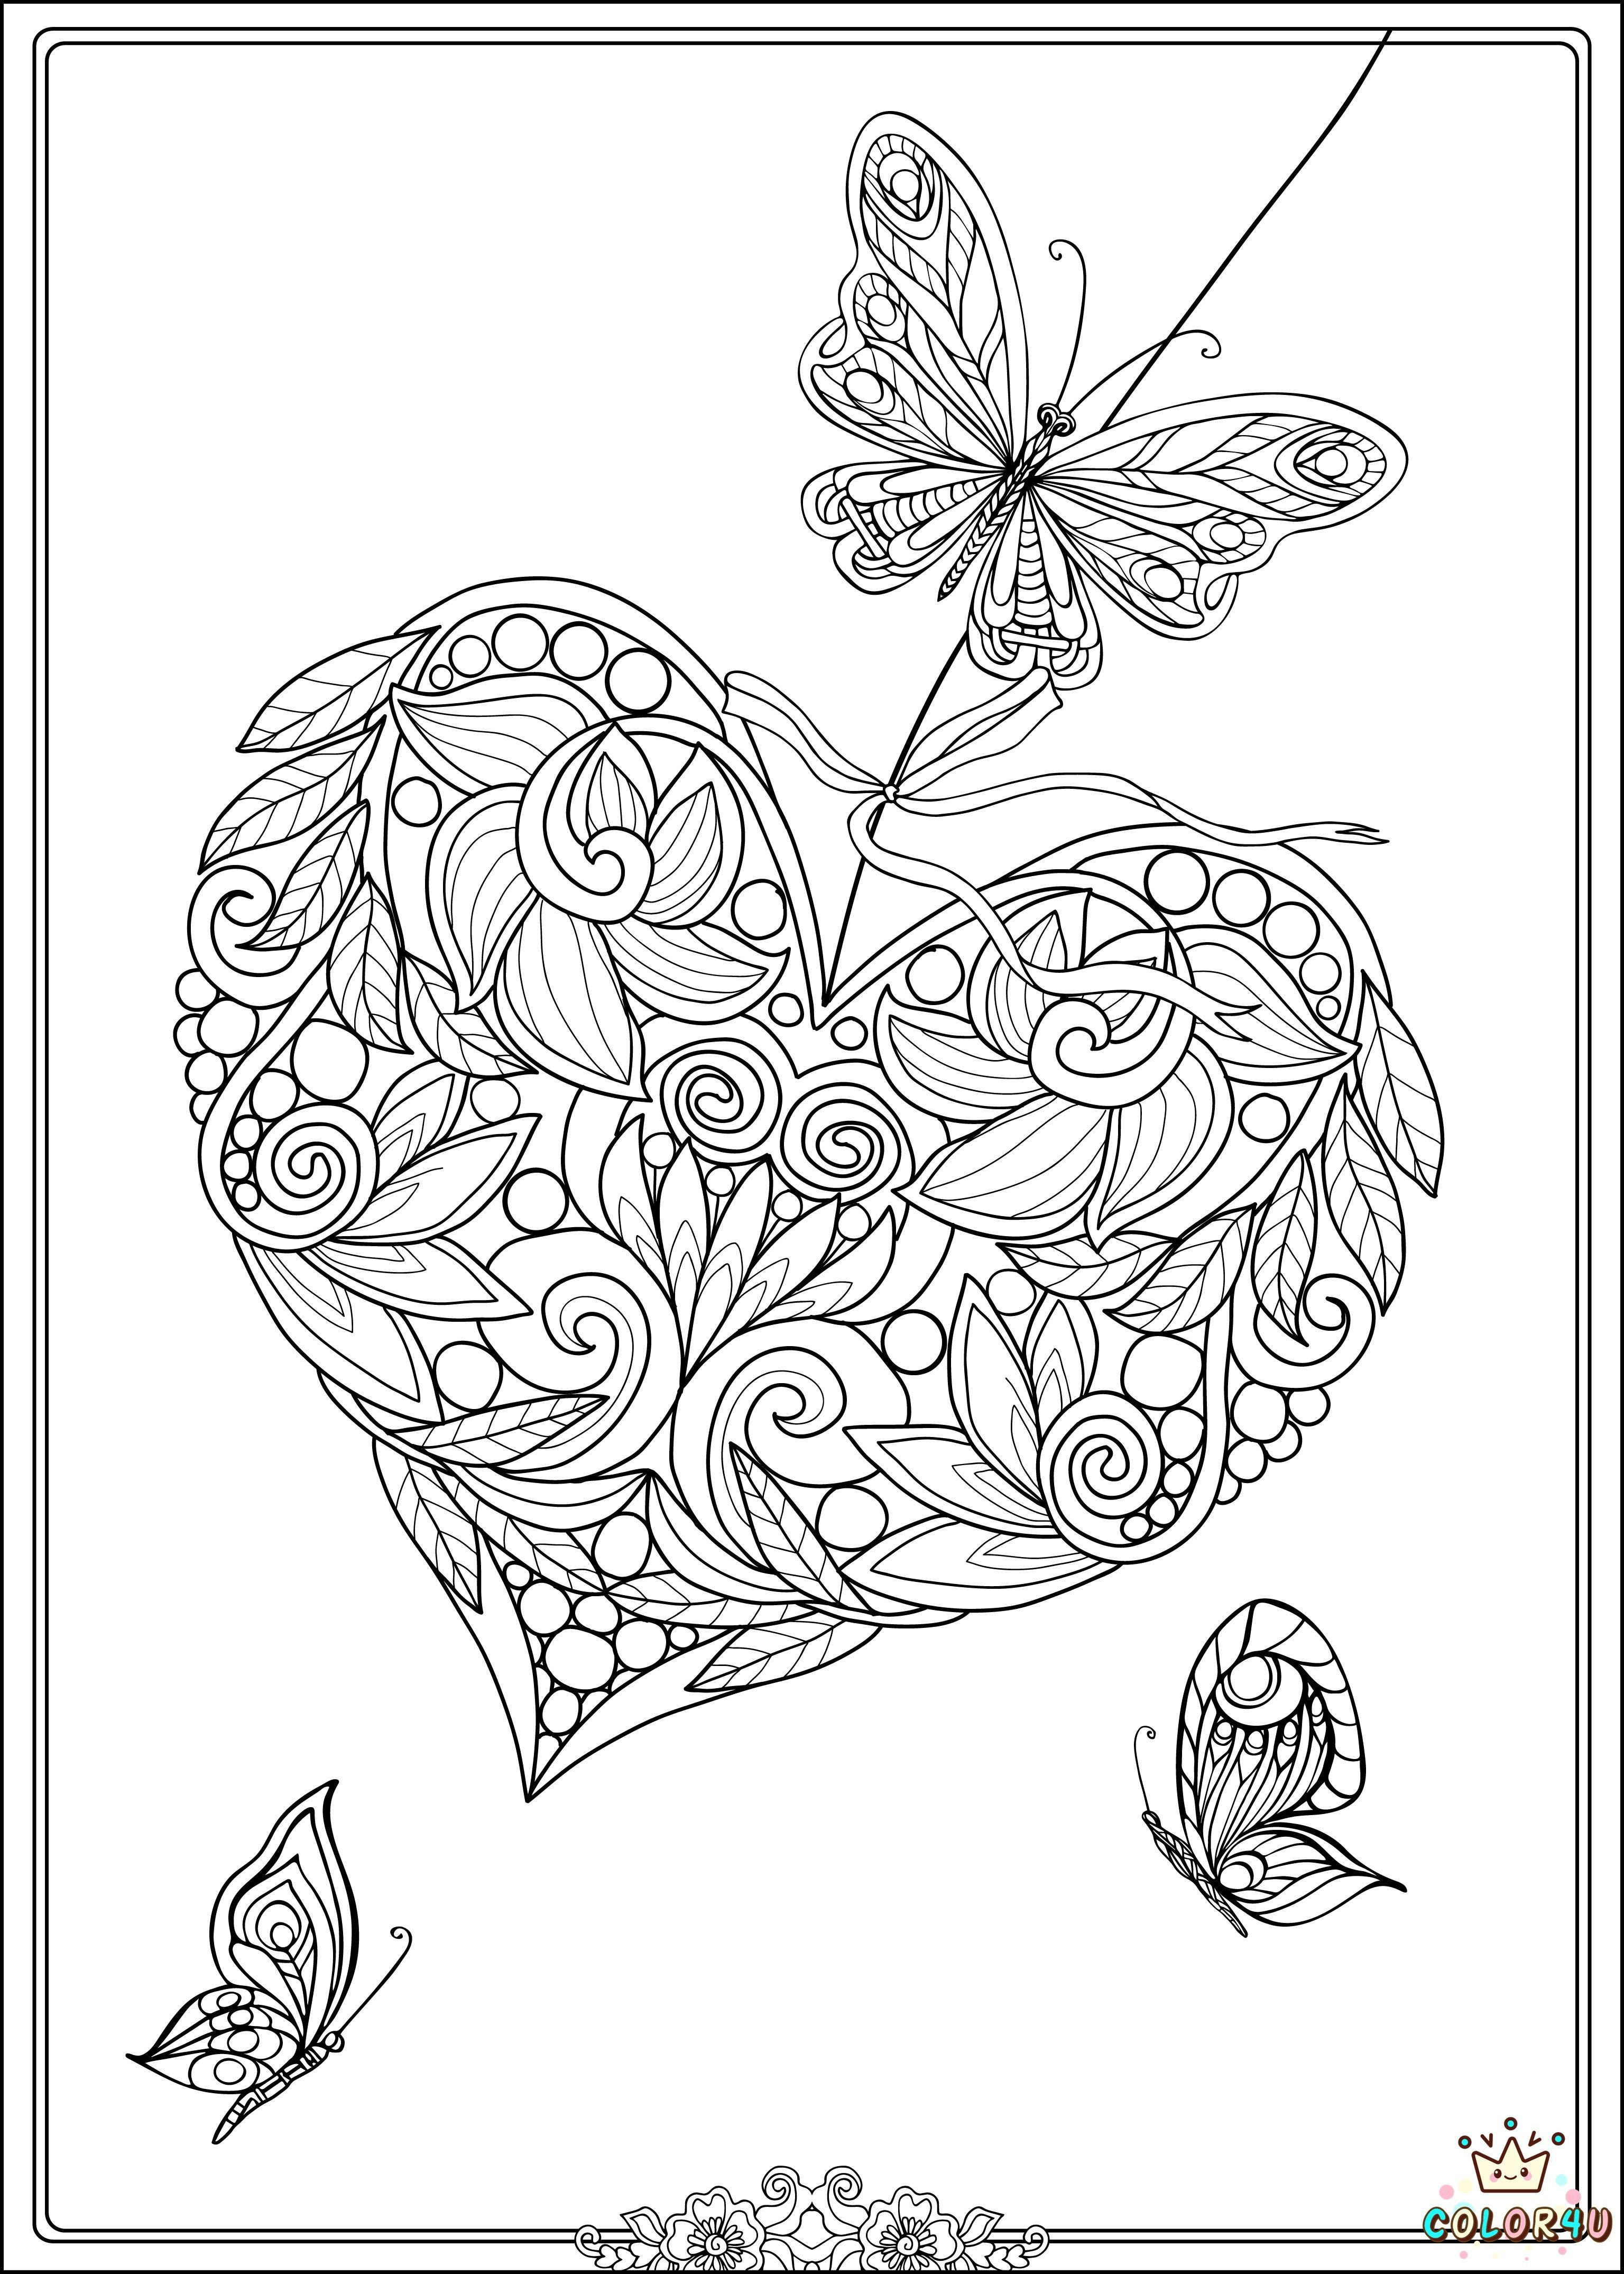 Hearts And Butterflies Coloring Pages Through The Thousands Of Photographs On The Interne In 2020 Heart Coloring Pages Butterfly Coloring Page Mandala Coloring Pages